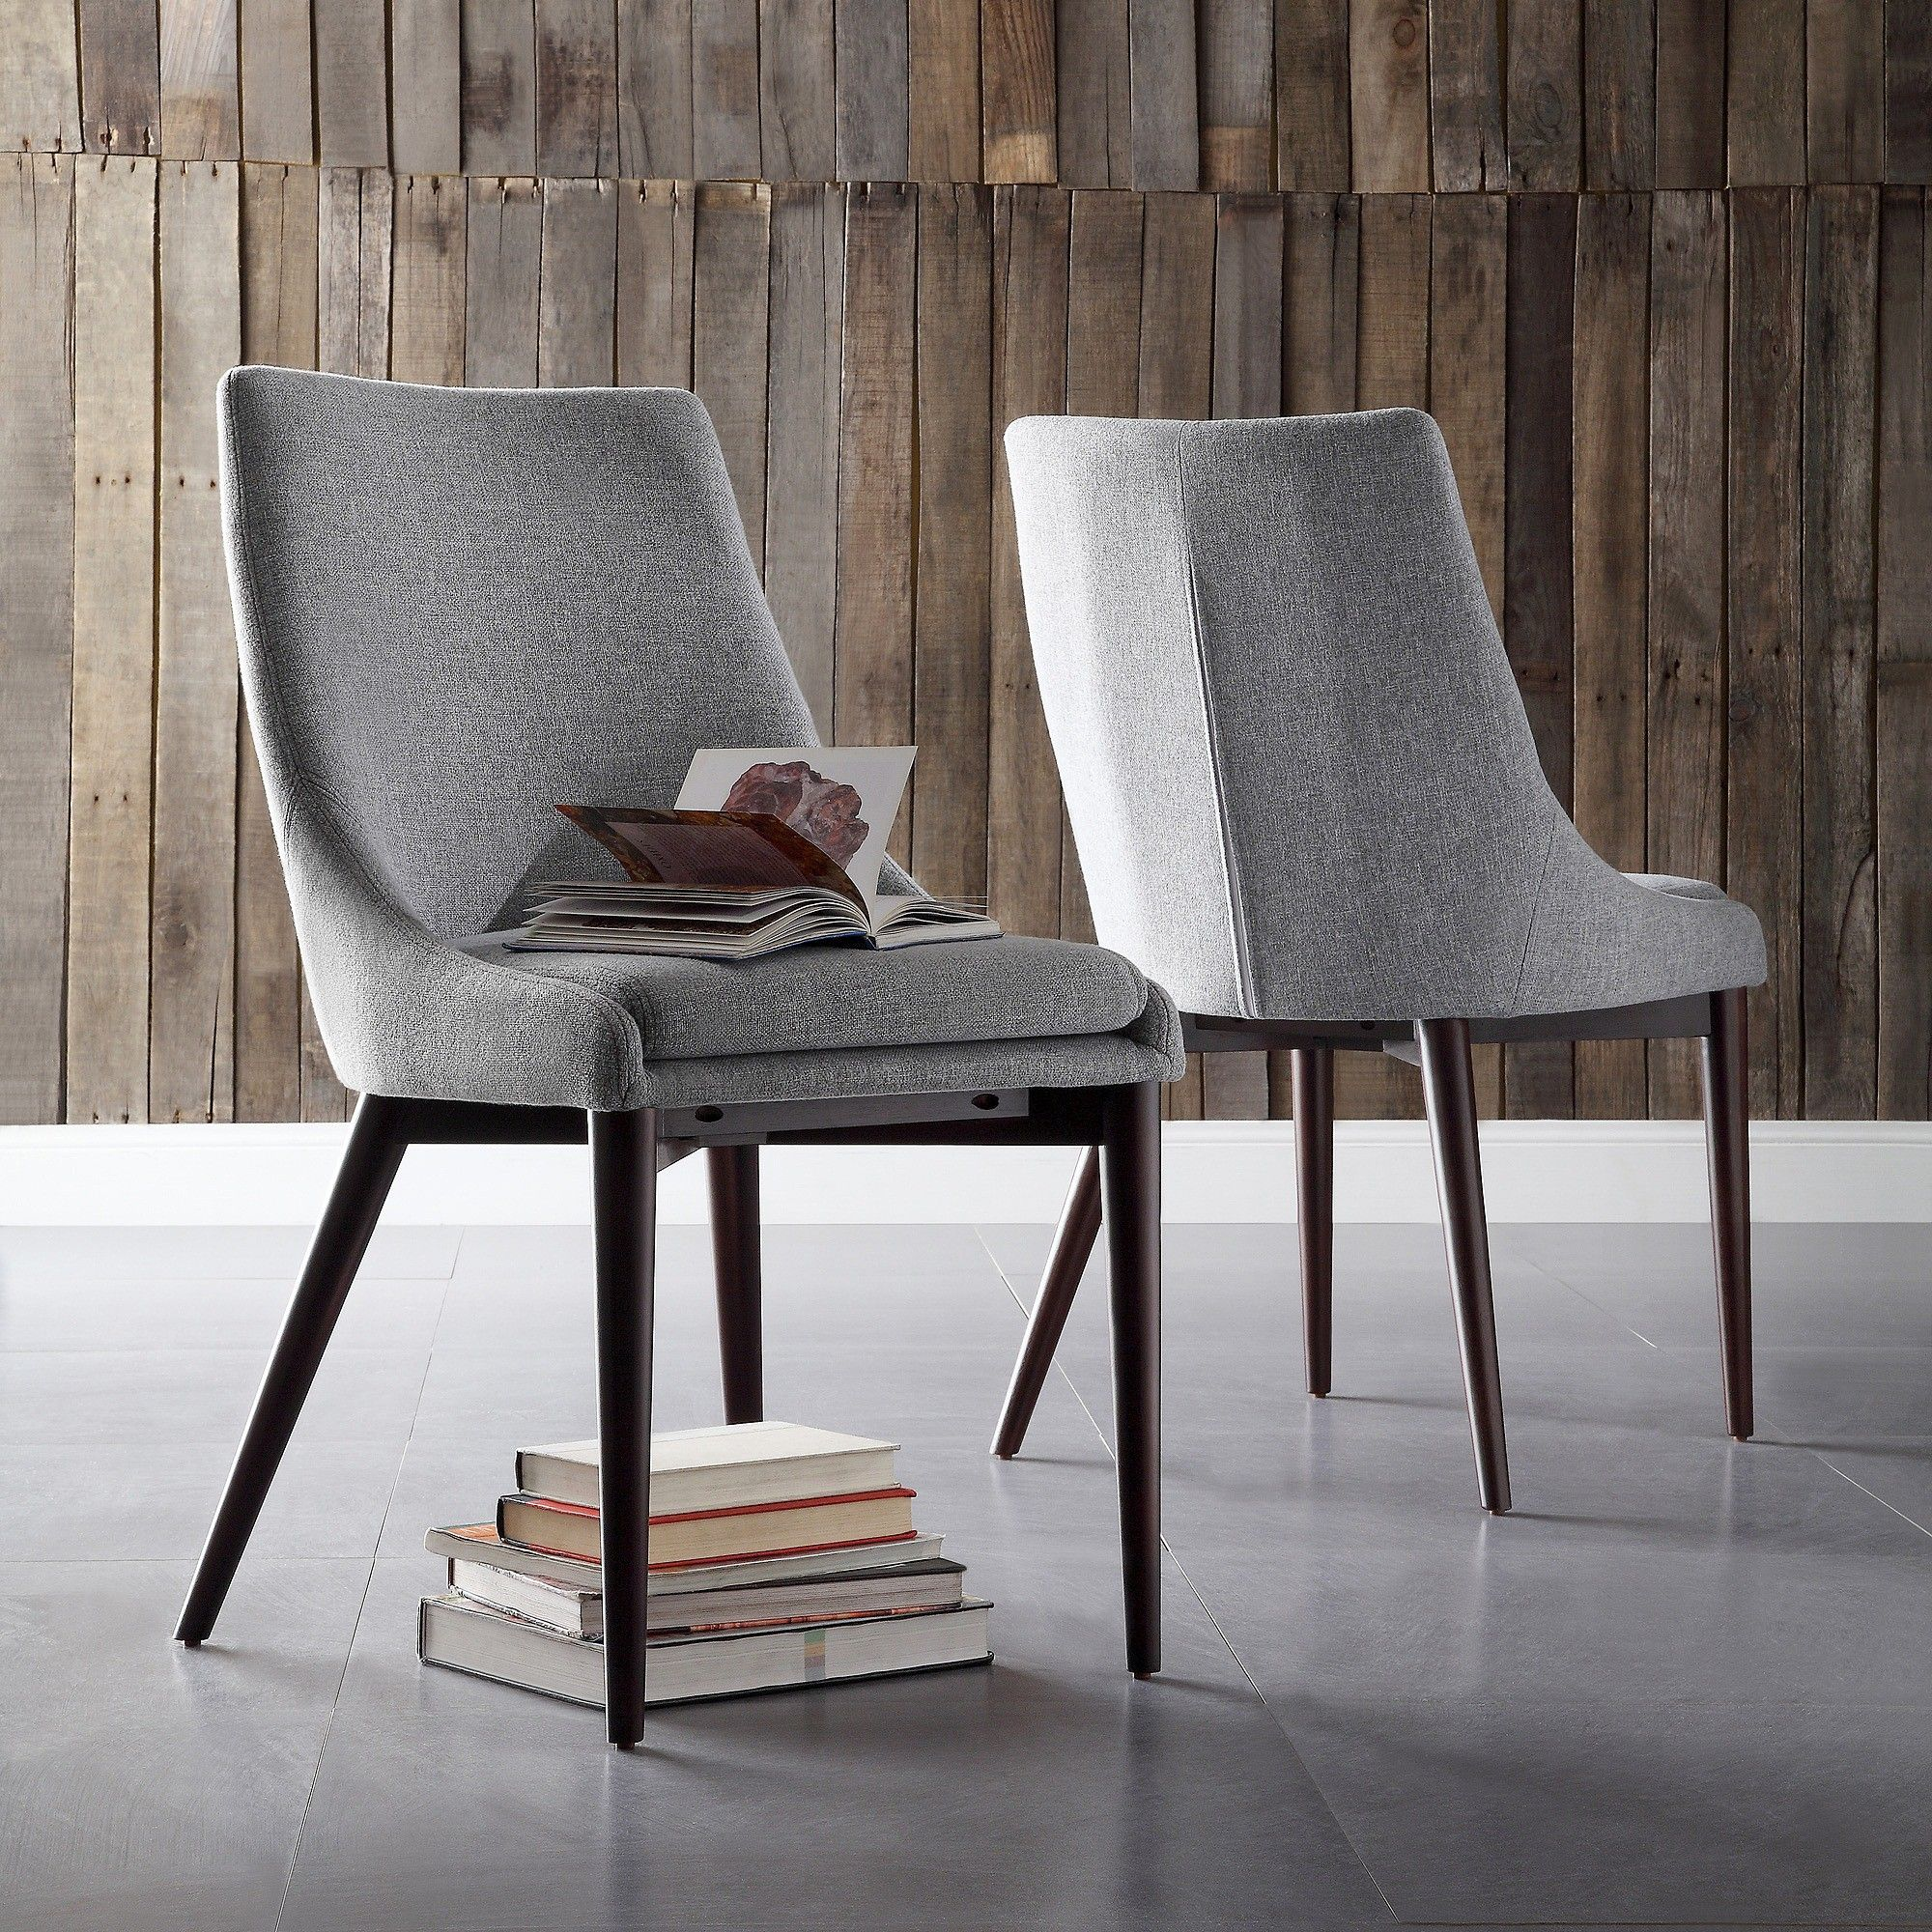 dining chairs set of 4 target big and tall leather office sullivan chair 2 inspire q grey